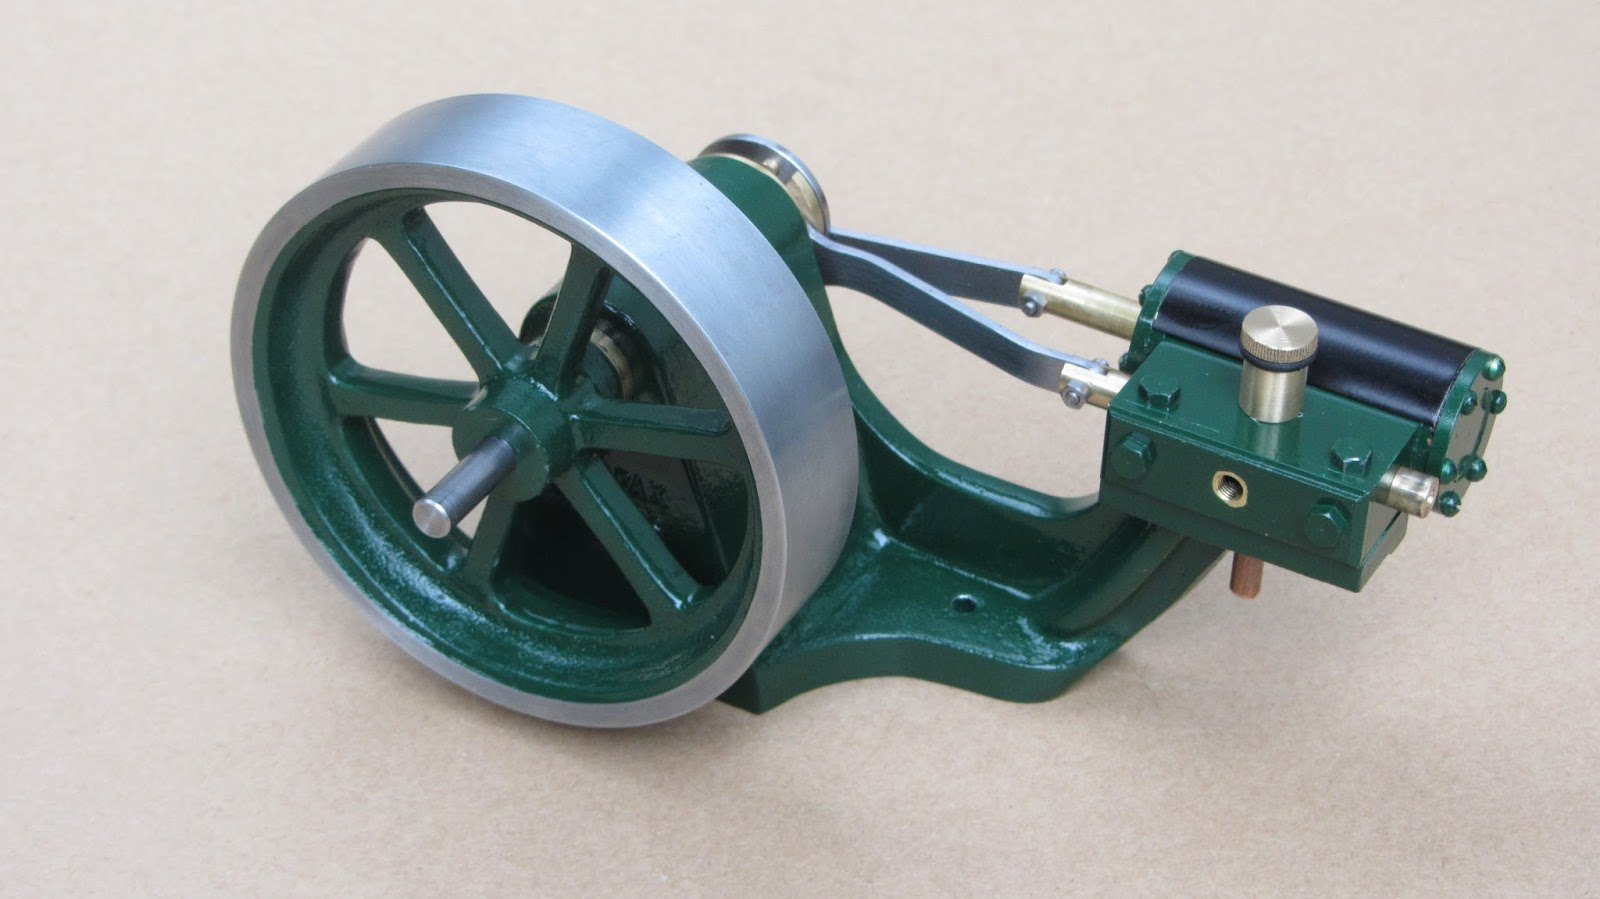 steam engine All of our models are supplied as sets of castings with drawings and all the necessary materials and fixings and fittings for you to machine your own model steam engine using a lathe and milling machine.